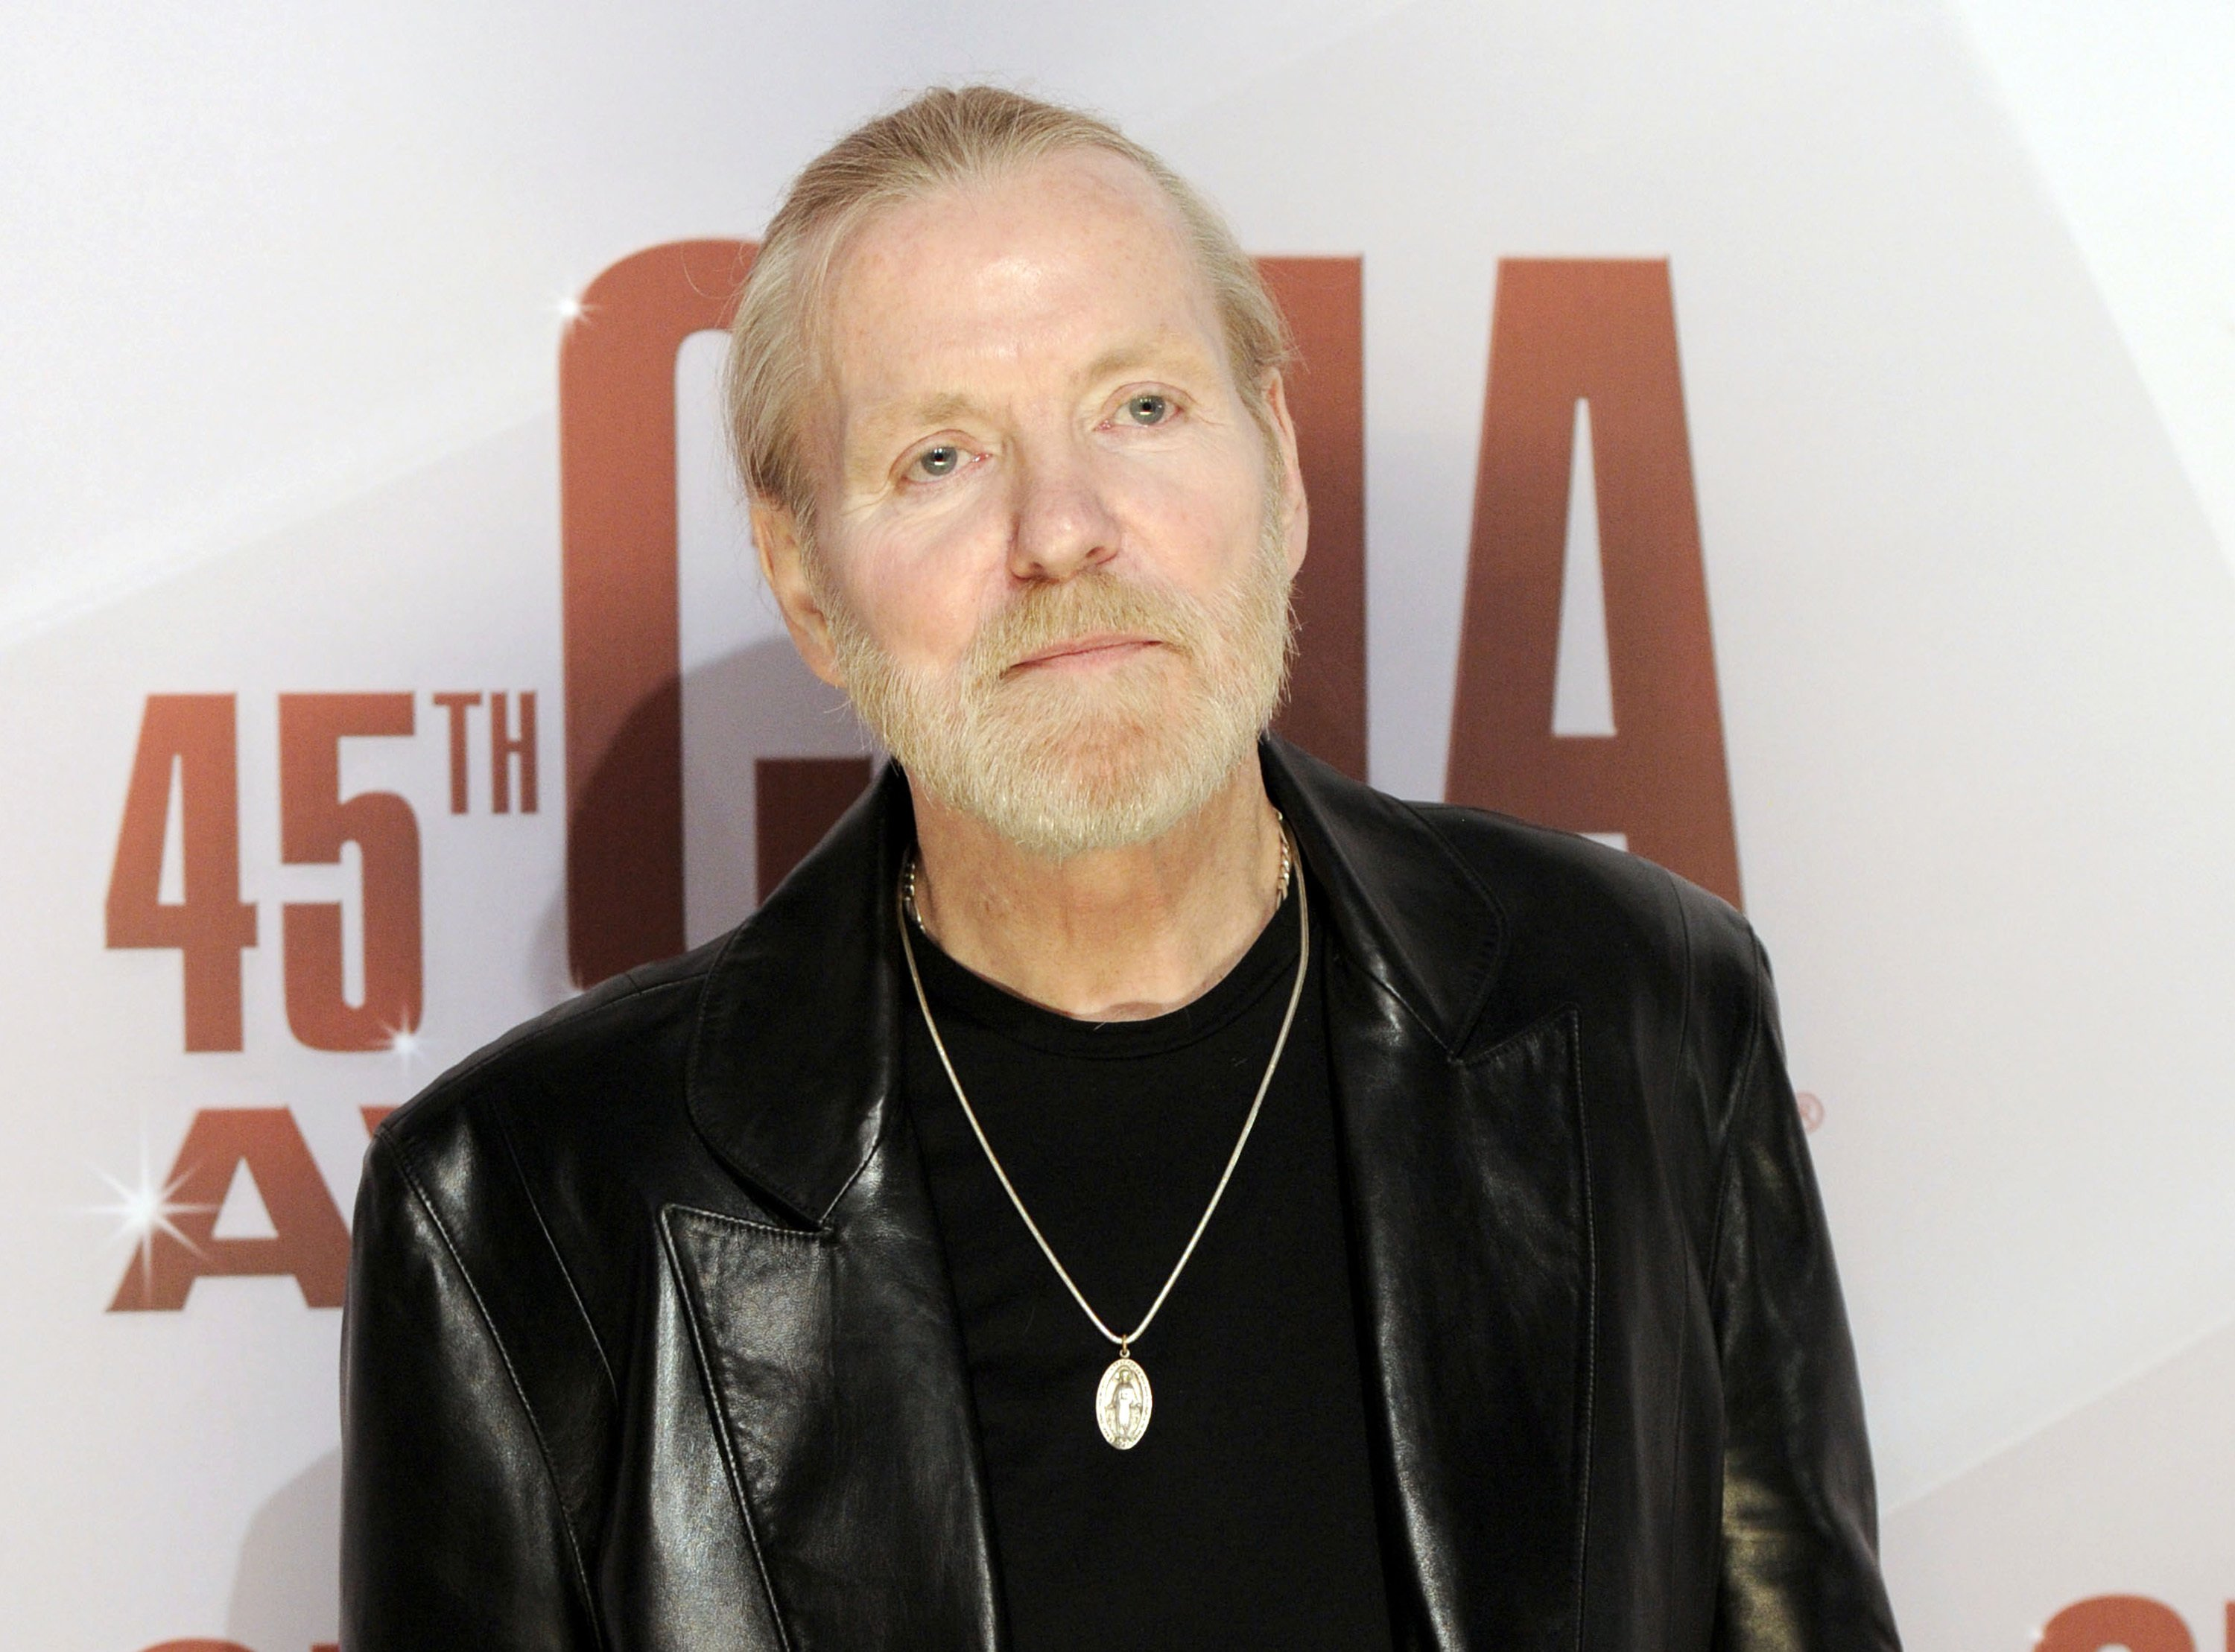 Rocker Gregg Allman dies at age 69; sang and lived the blues